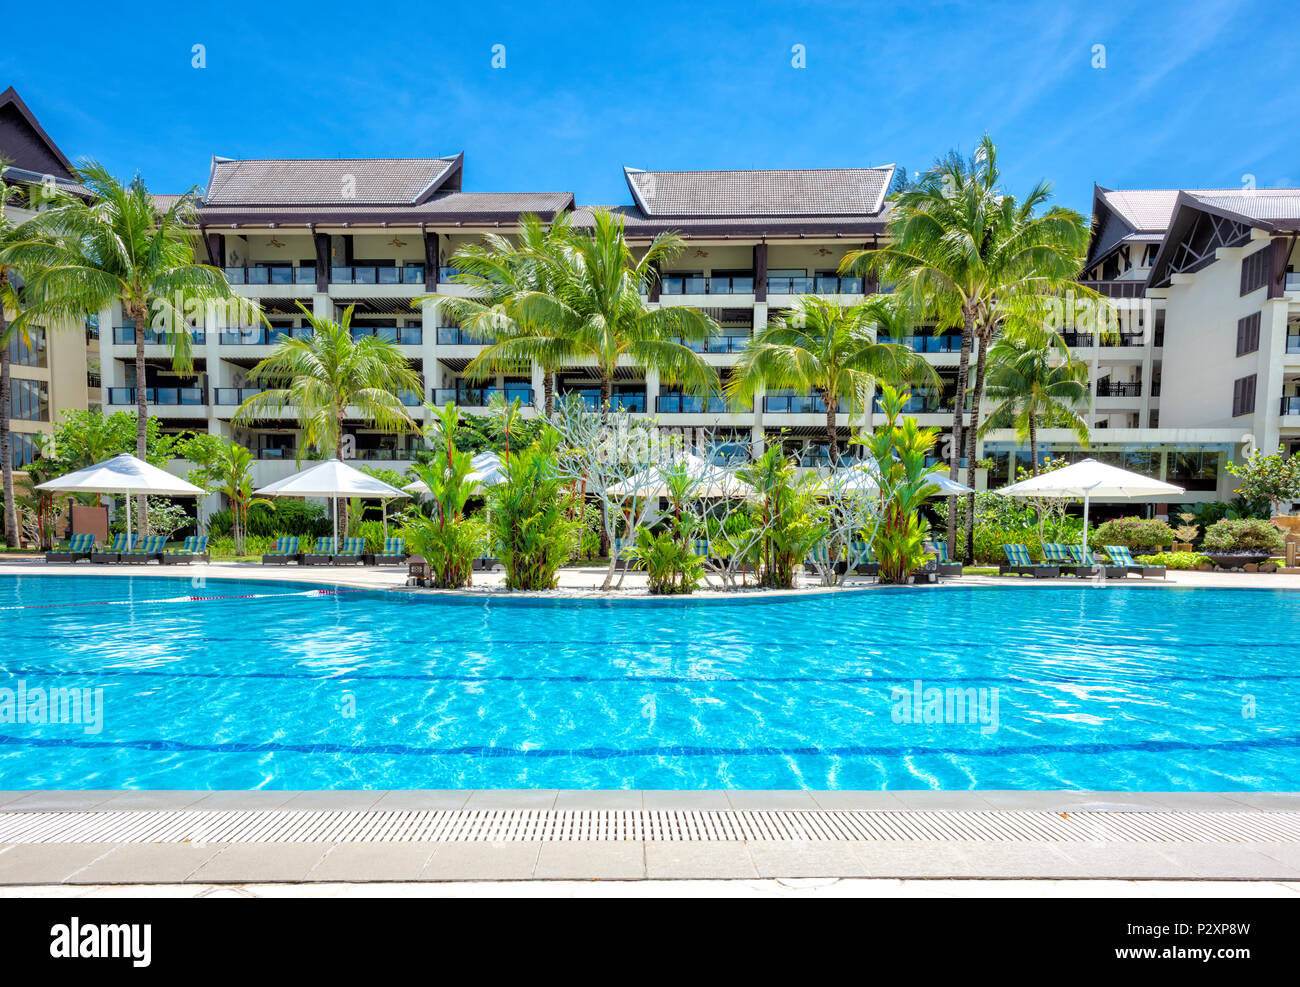 Empty outdoor swimming pool at the Shangri La Rasa Ria Hotel and Resort in Kota Kinabalu, Borneo, Malaysia Stock Photo